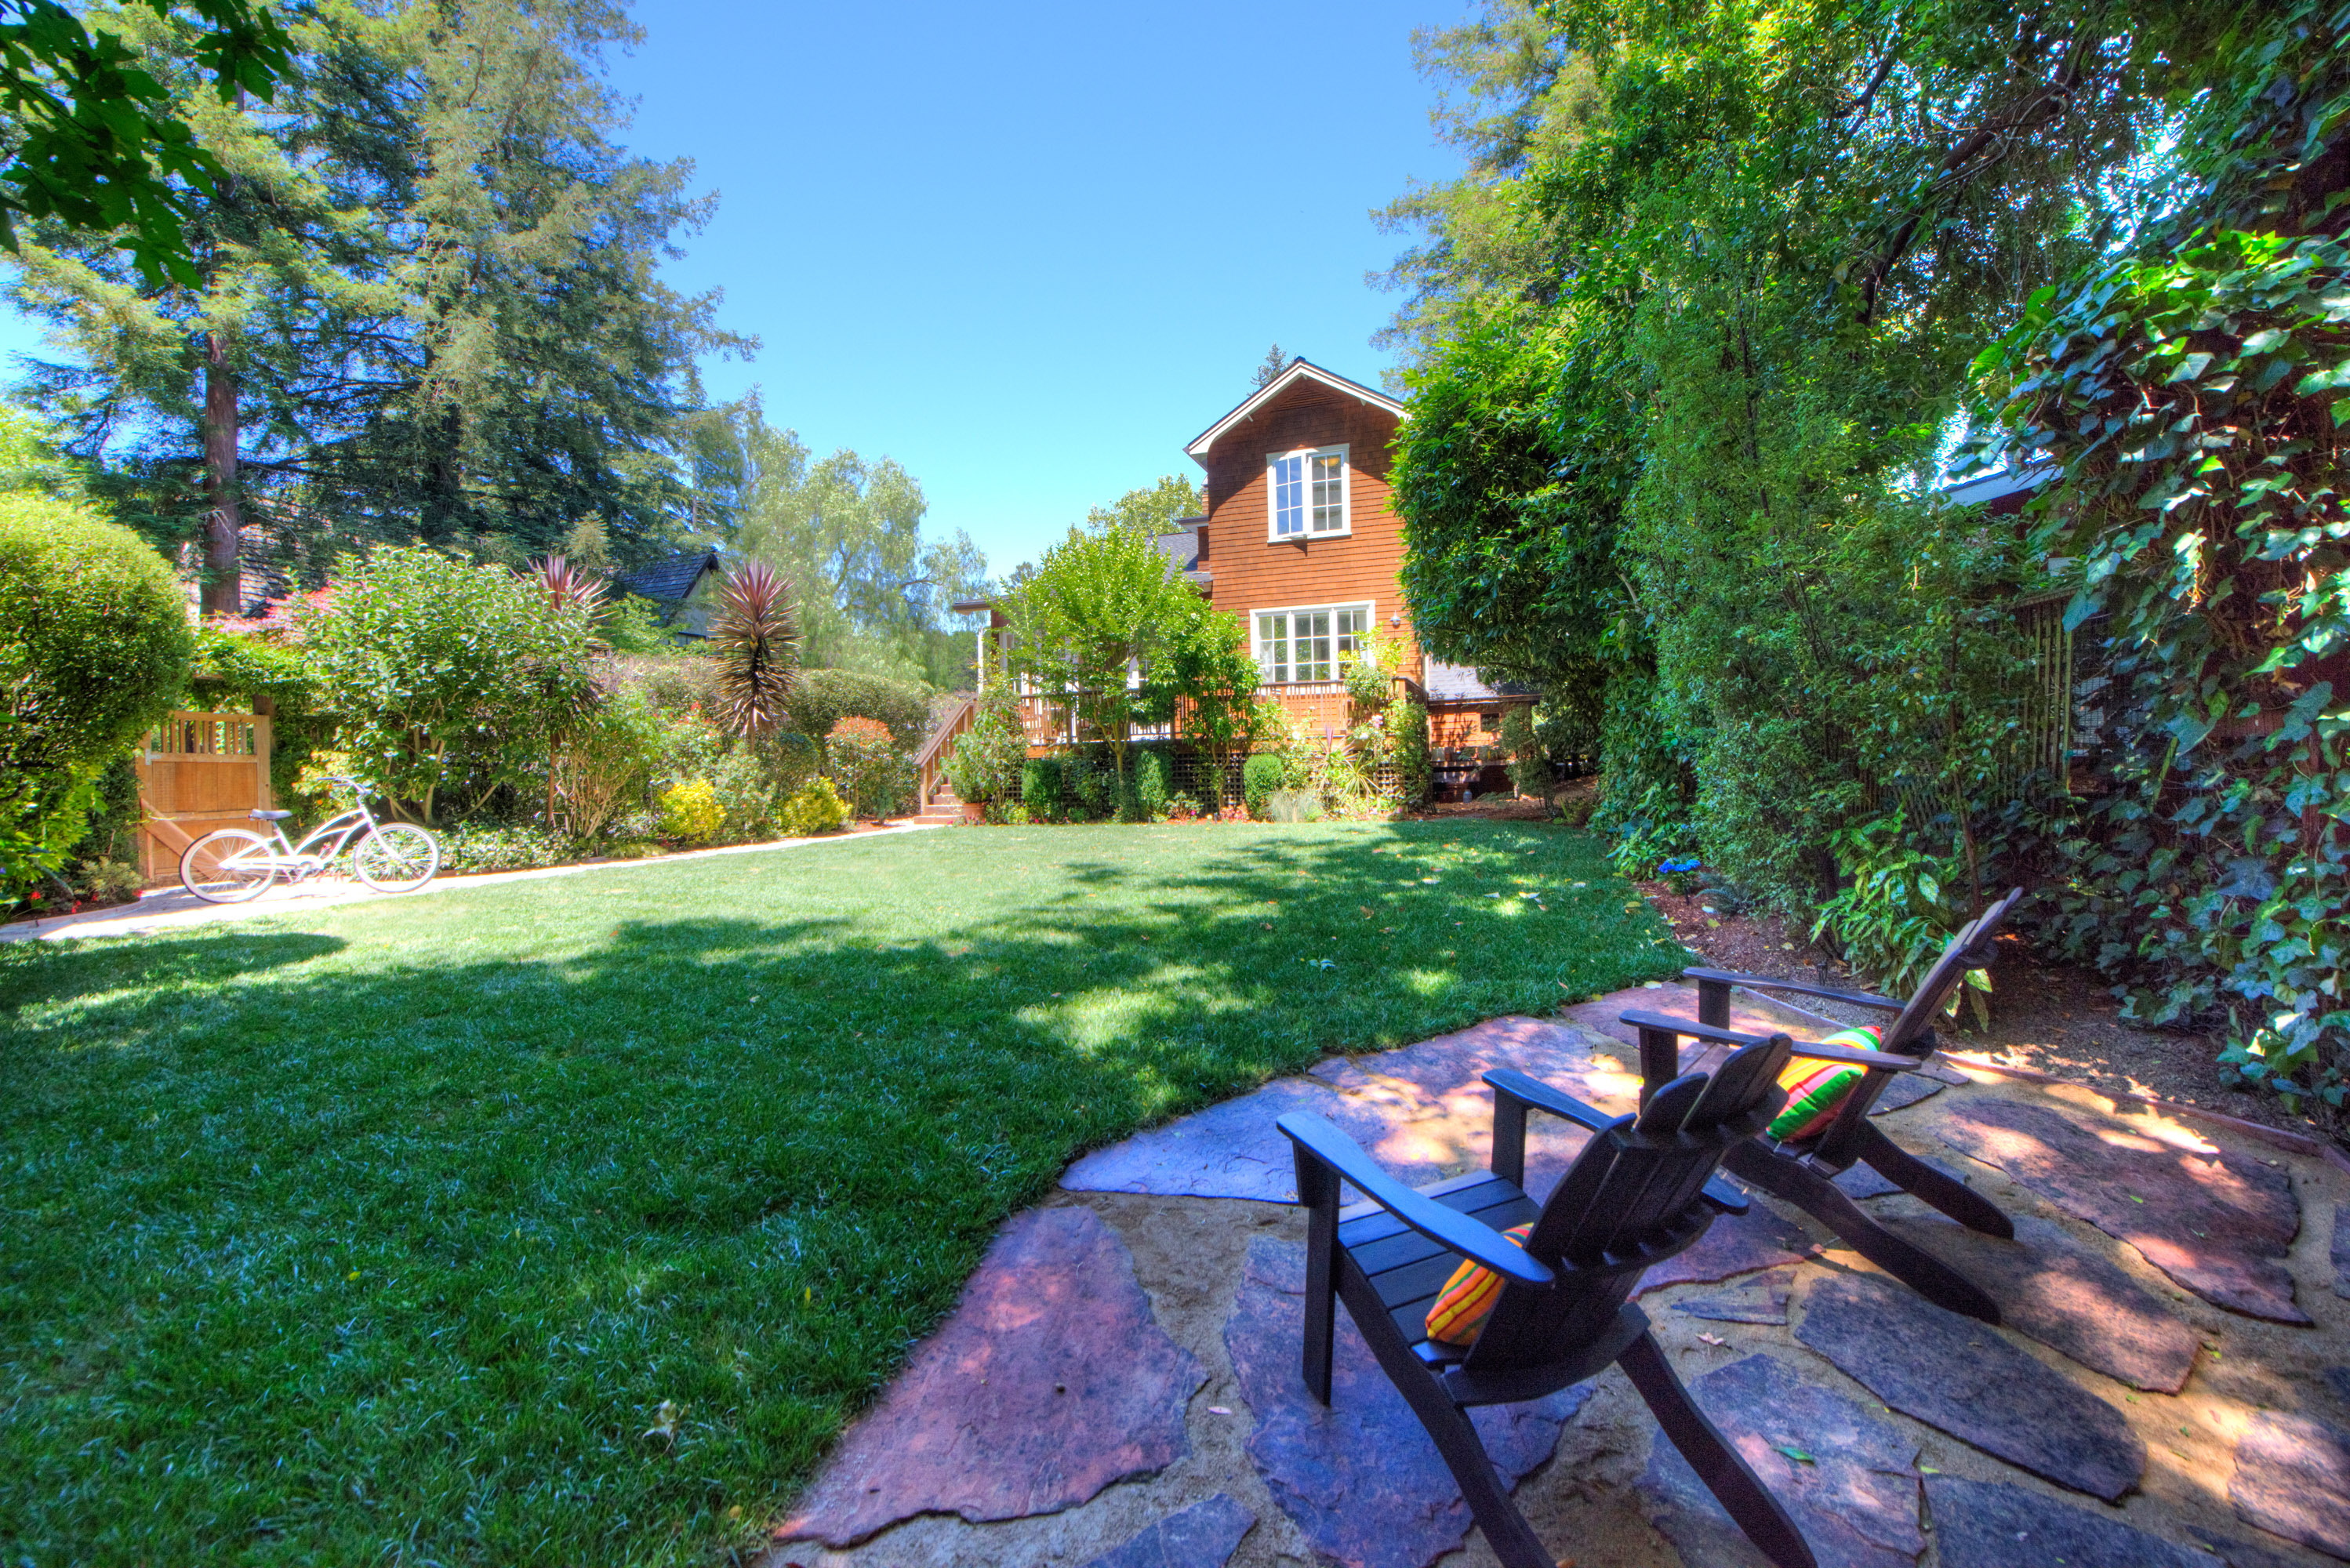 Single Family Home for Sale at Urban Farmhouse in Kentfield! 245 Kent Avenue Kentfield, California, 94904 United States